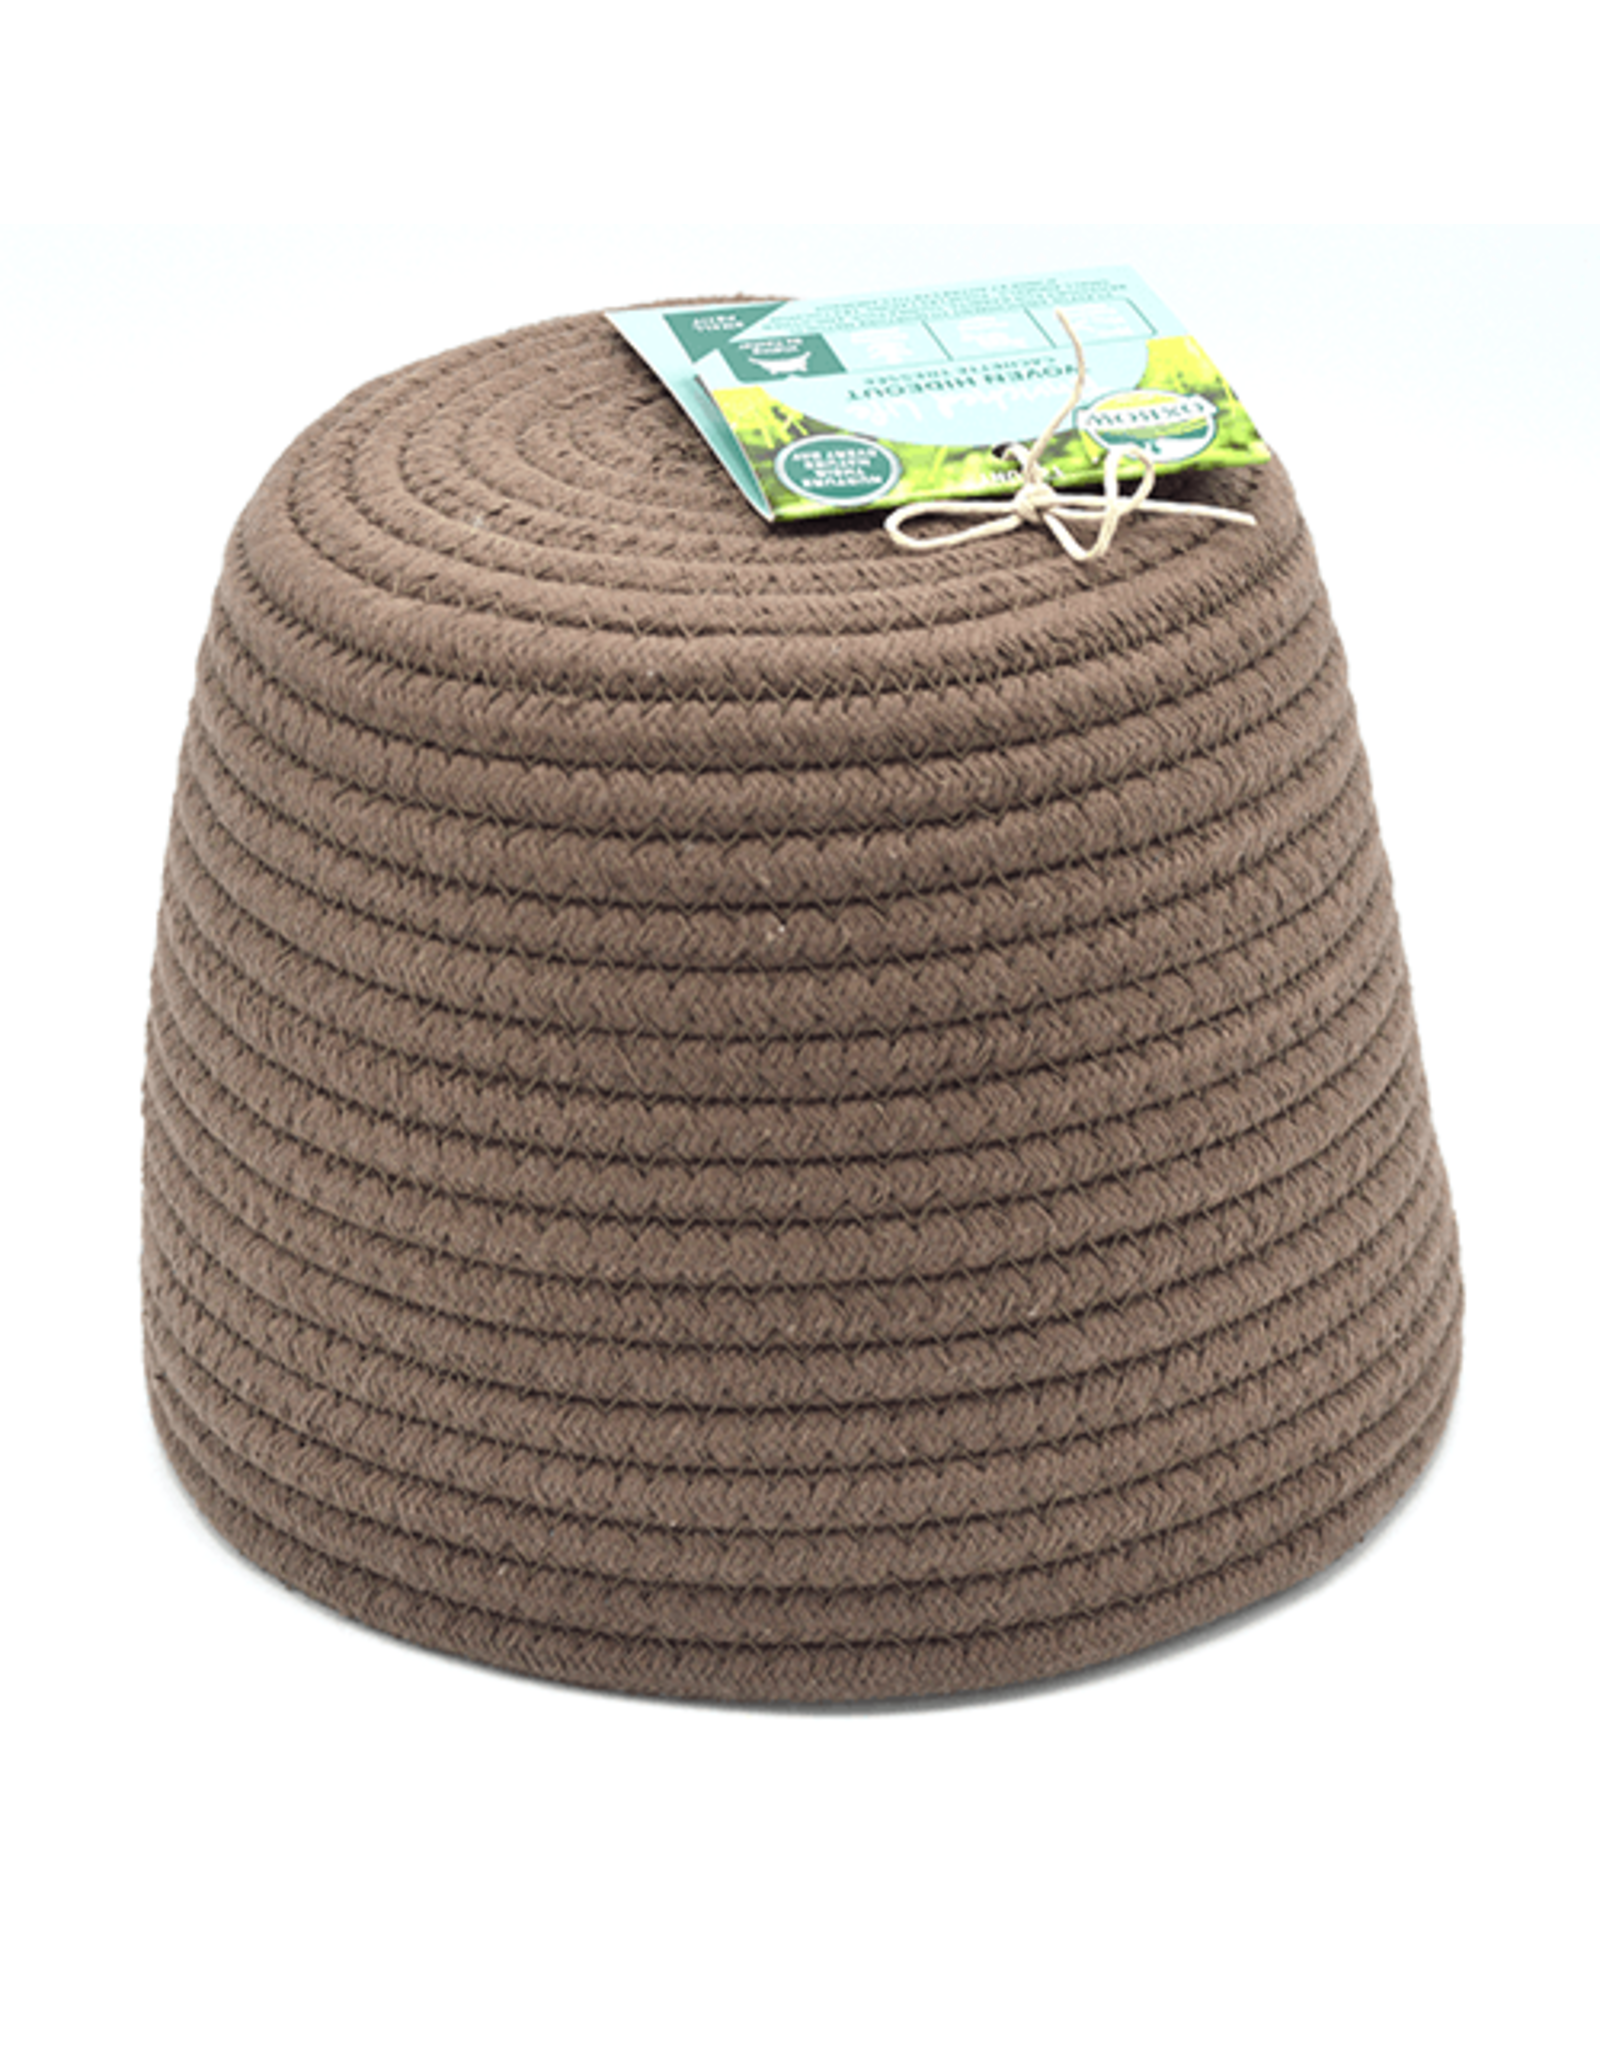 Oxbow Oxbow Enriched Life Woven Hideout Small